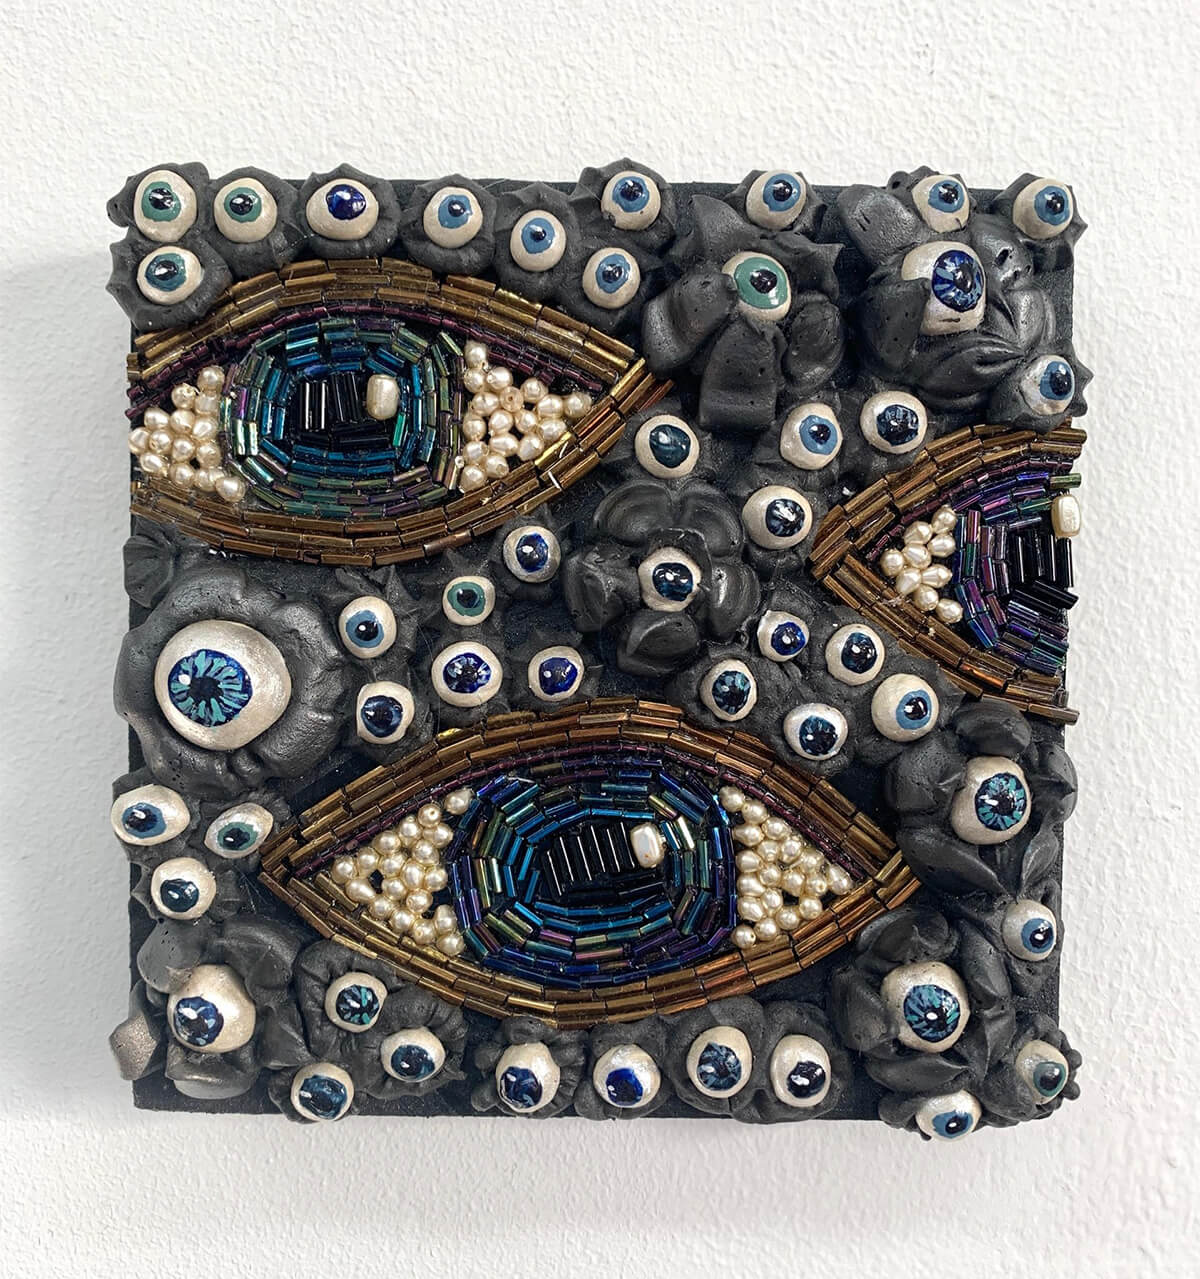 Seren Morey and Carri Skoczek, (of New York), The Eyes Have It, Beads, Ultralight acrylic, pigment dispersions and clay on panel